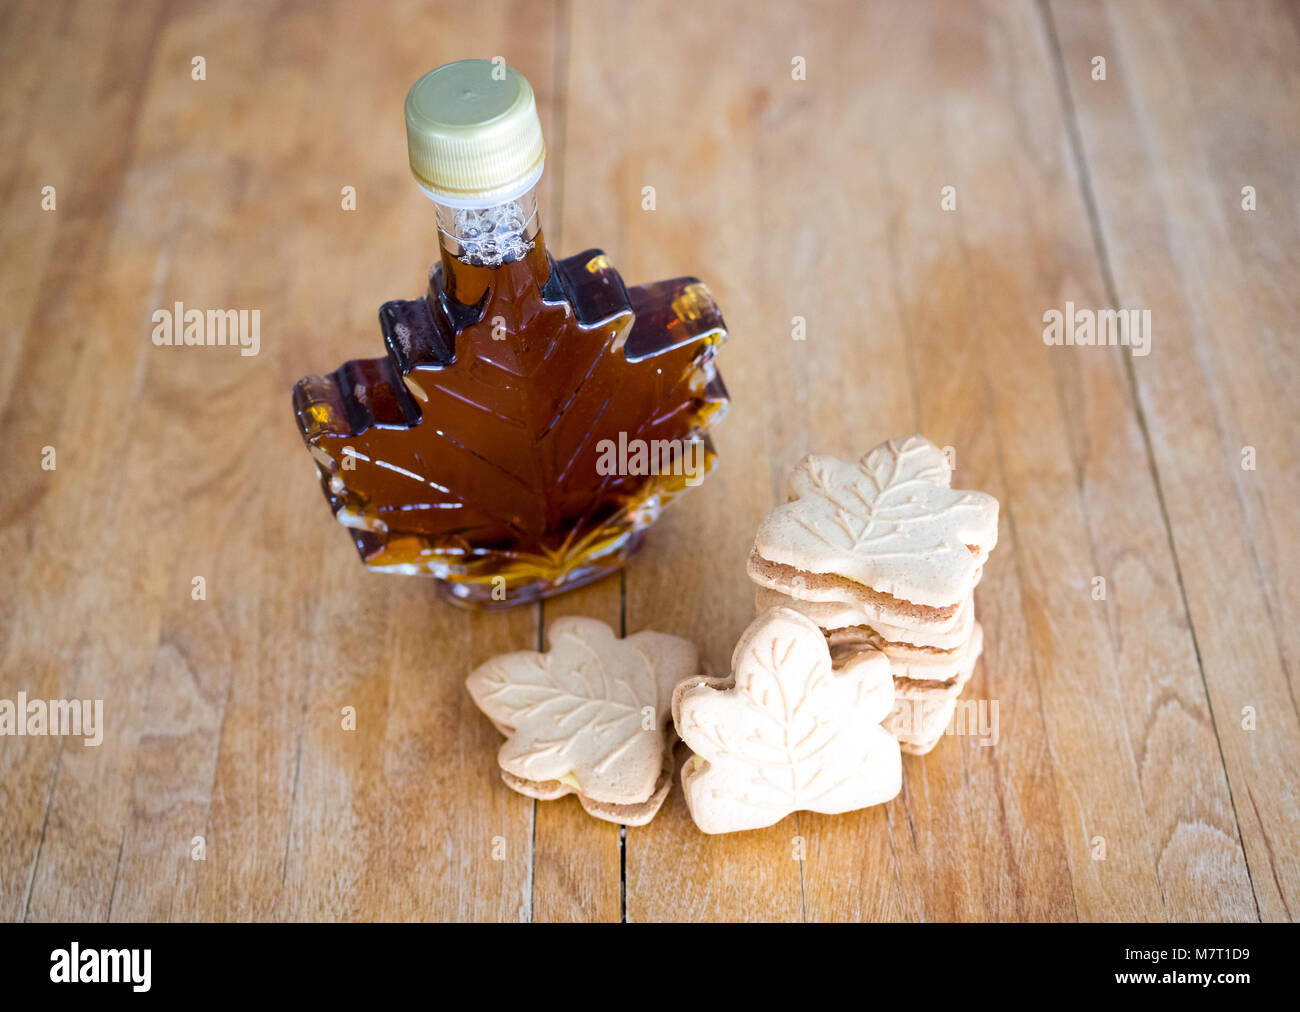 Delicious maple cookies (maple leaf cookies), made with real Canadian maple syrup. - Stock Image